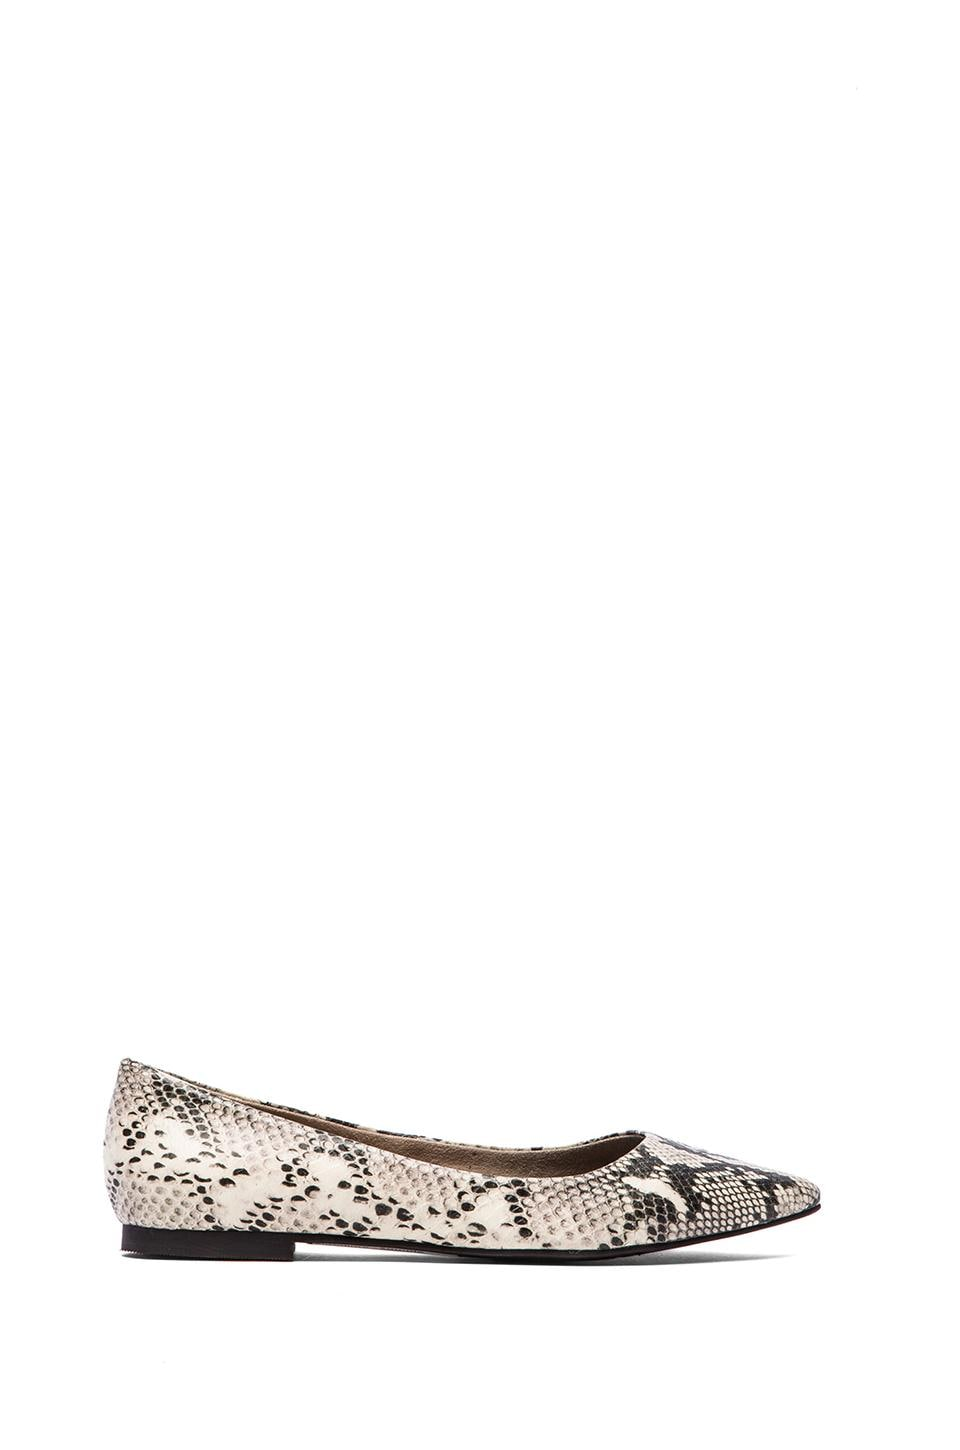 Seychelles Well Known Flat in Black & White Python